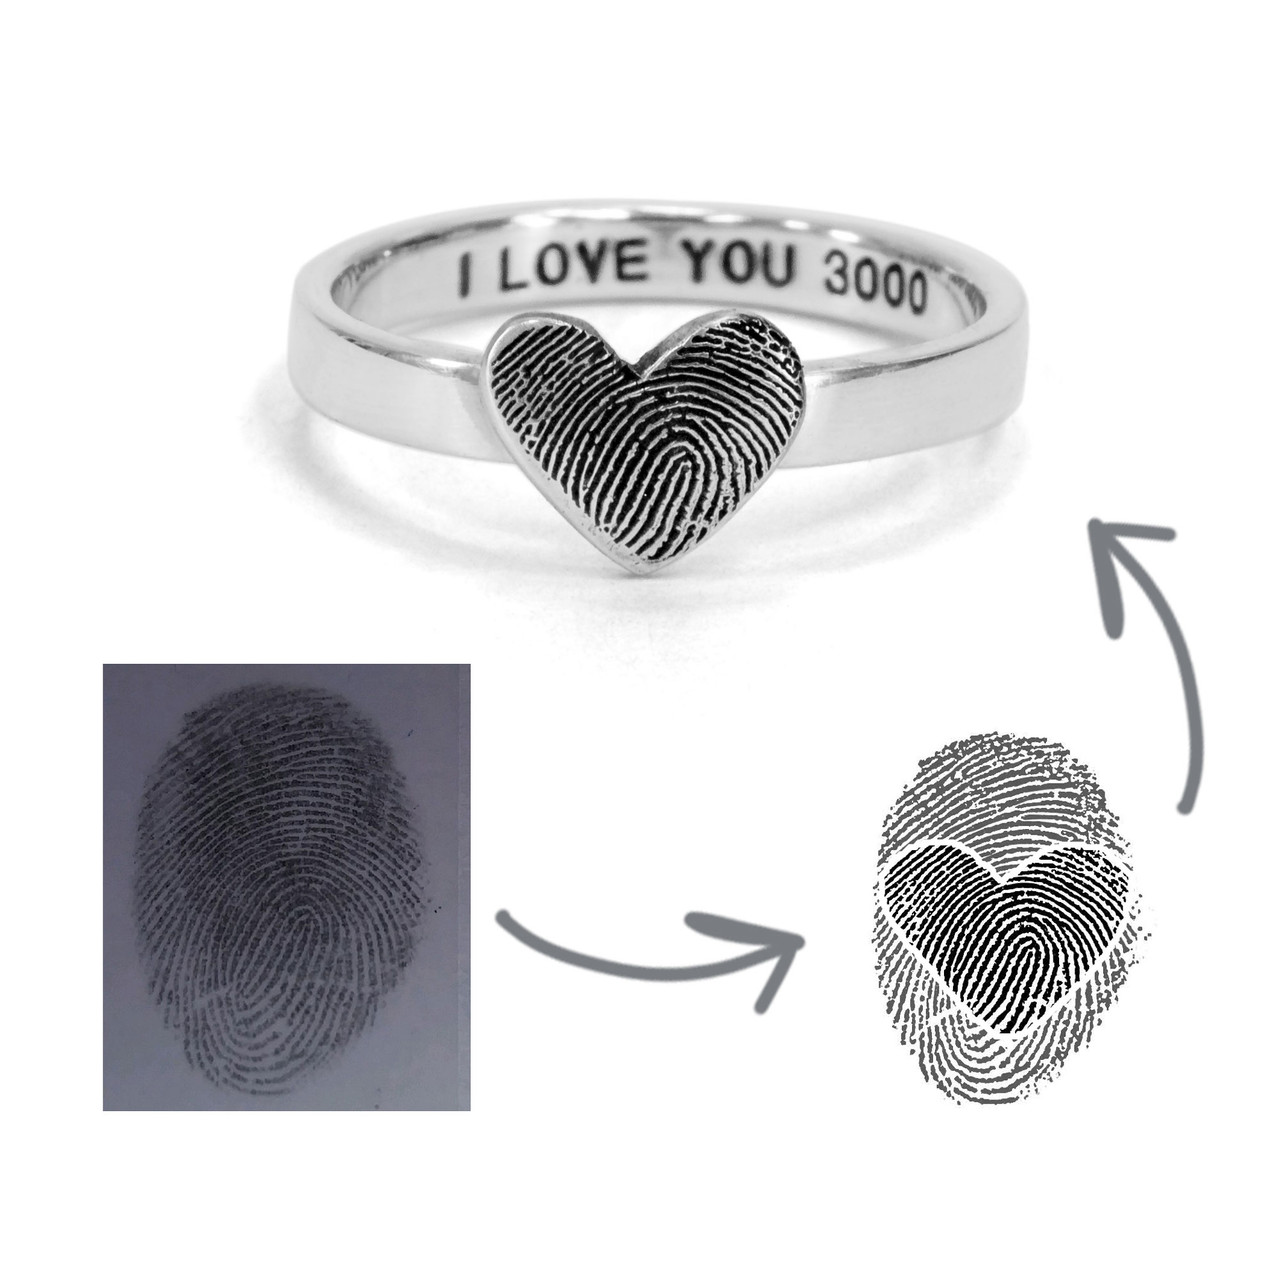 How we put your fingerprint onto a sterling silver fingerprint ring